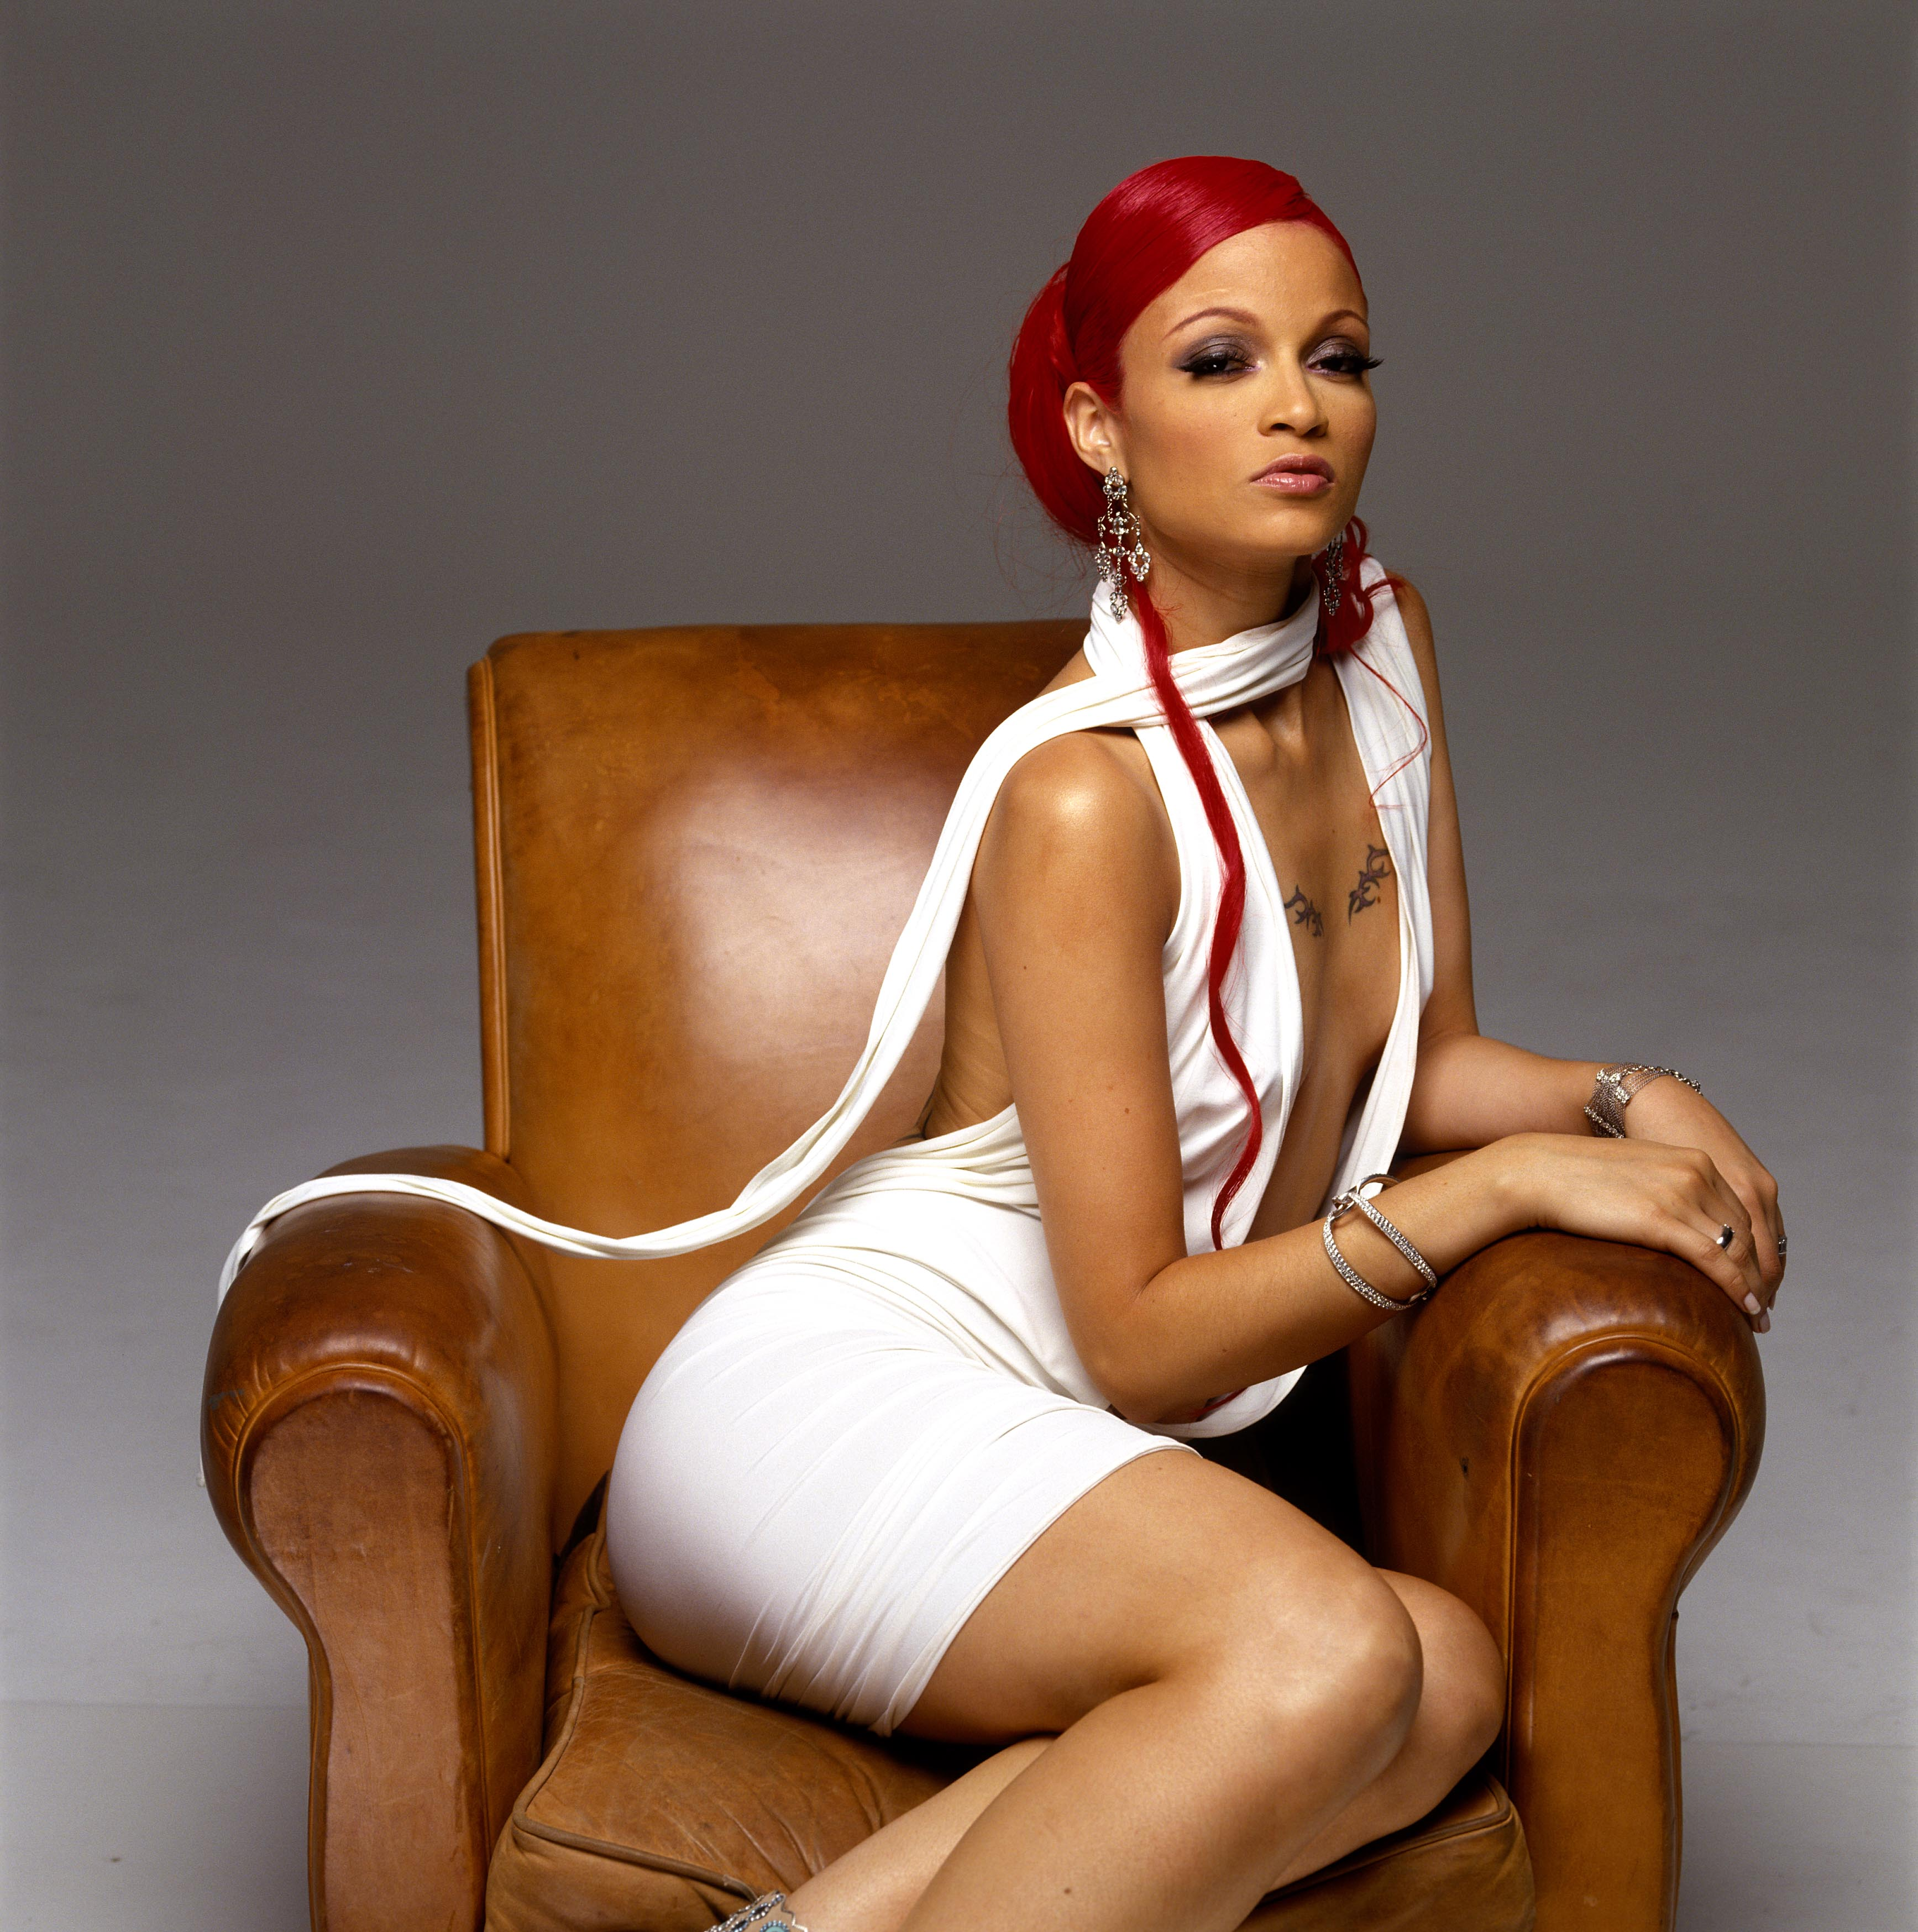 Charli Baltimore Wallpapers